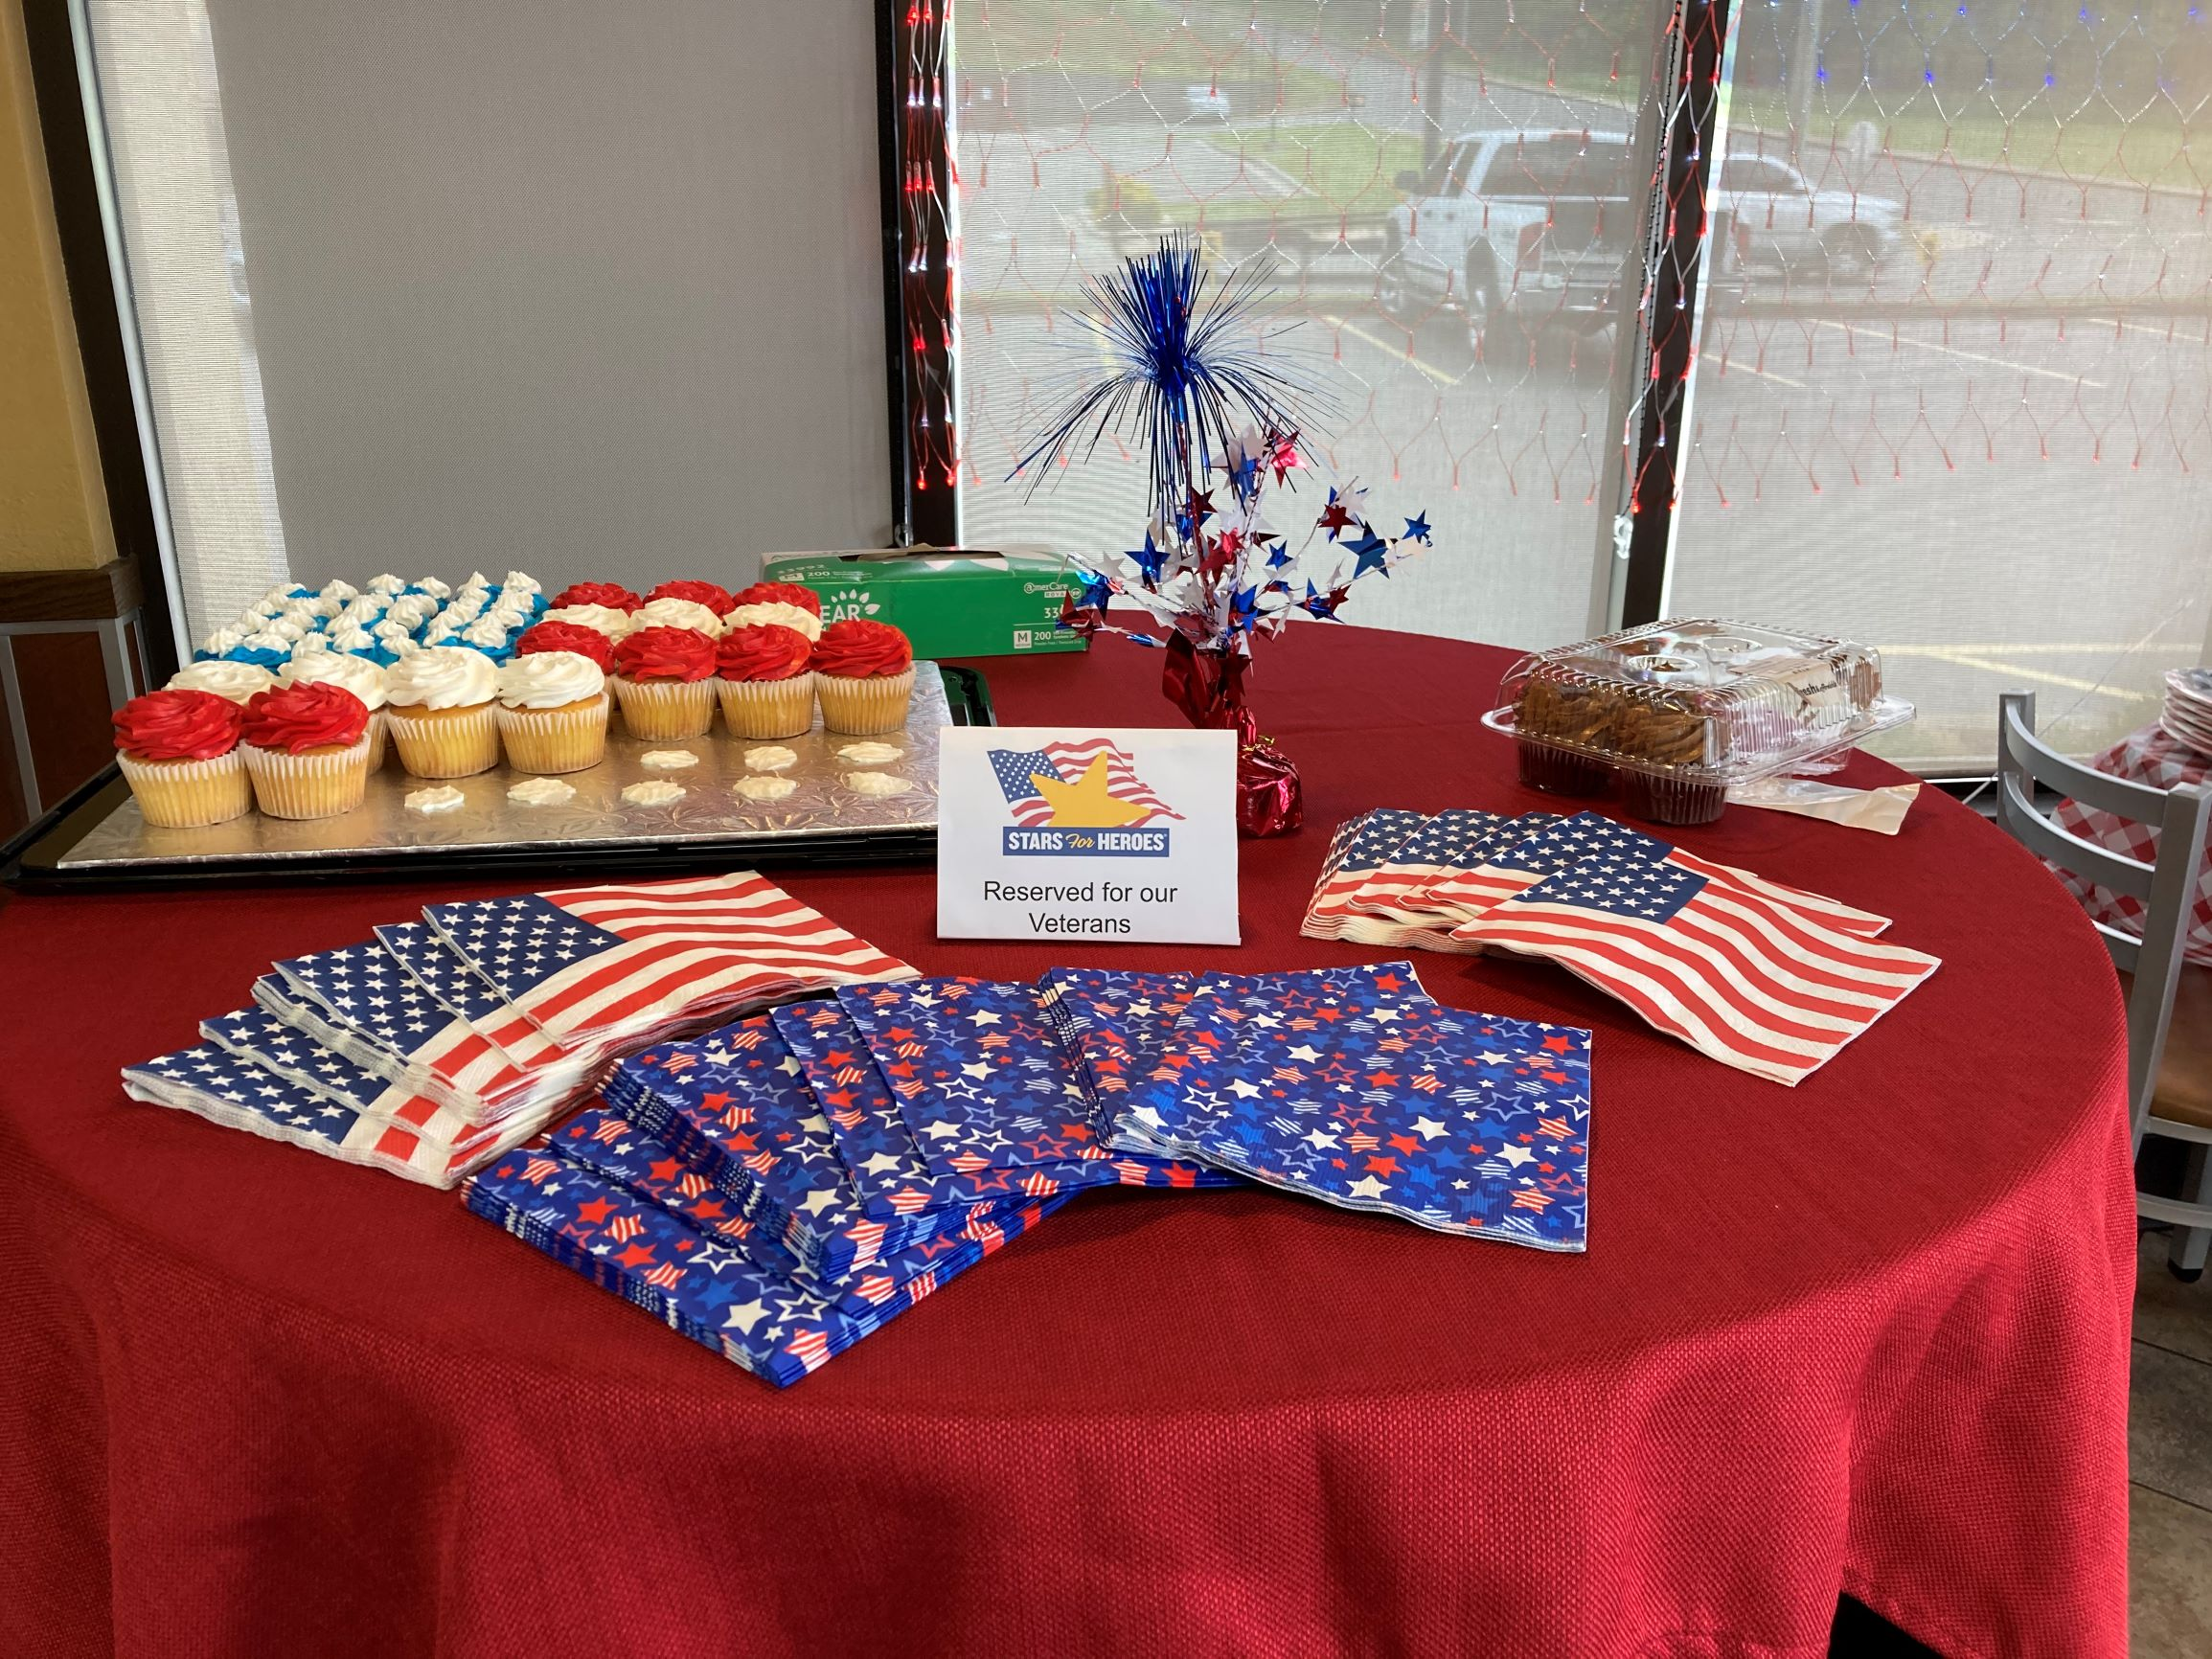 A table with patriotic decorations and cupcakes for veterans